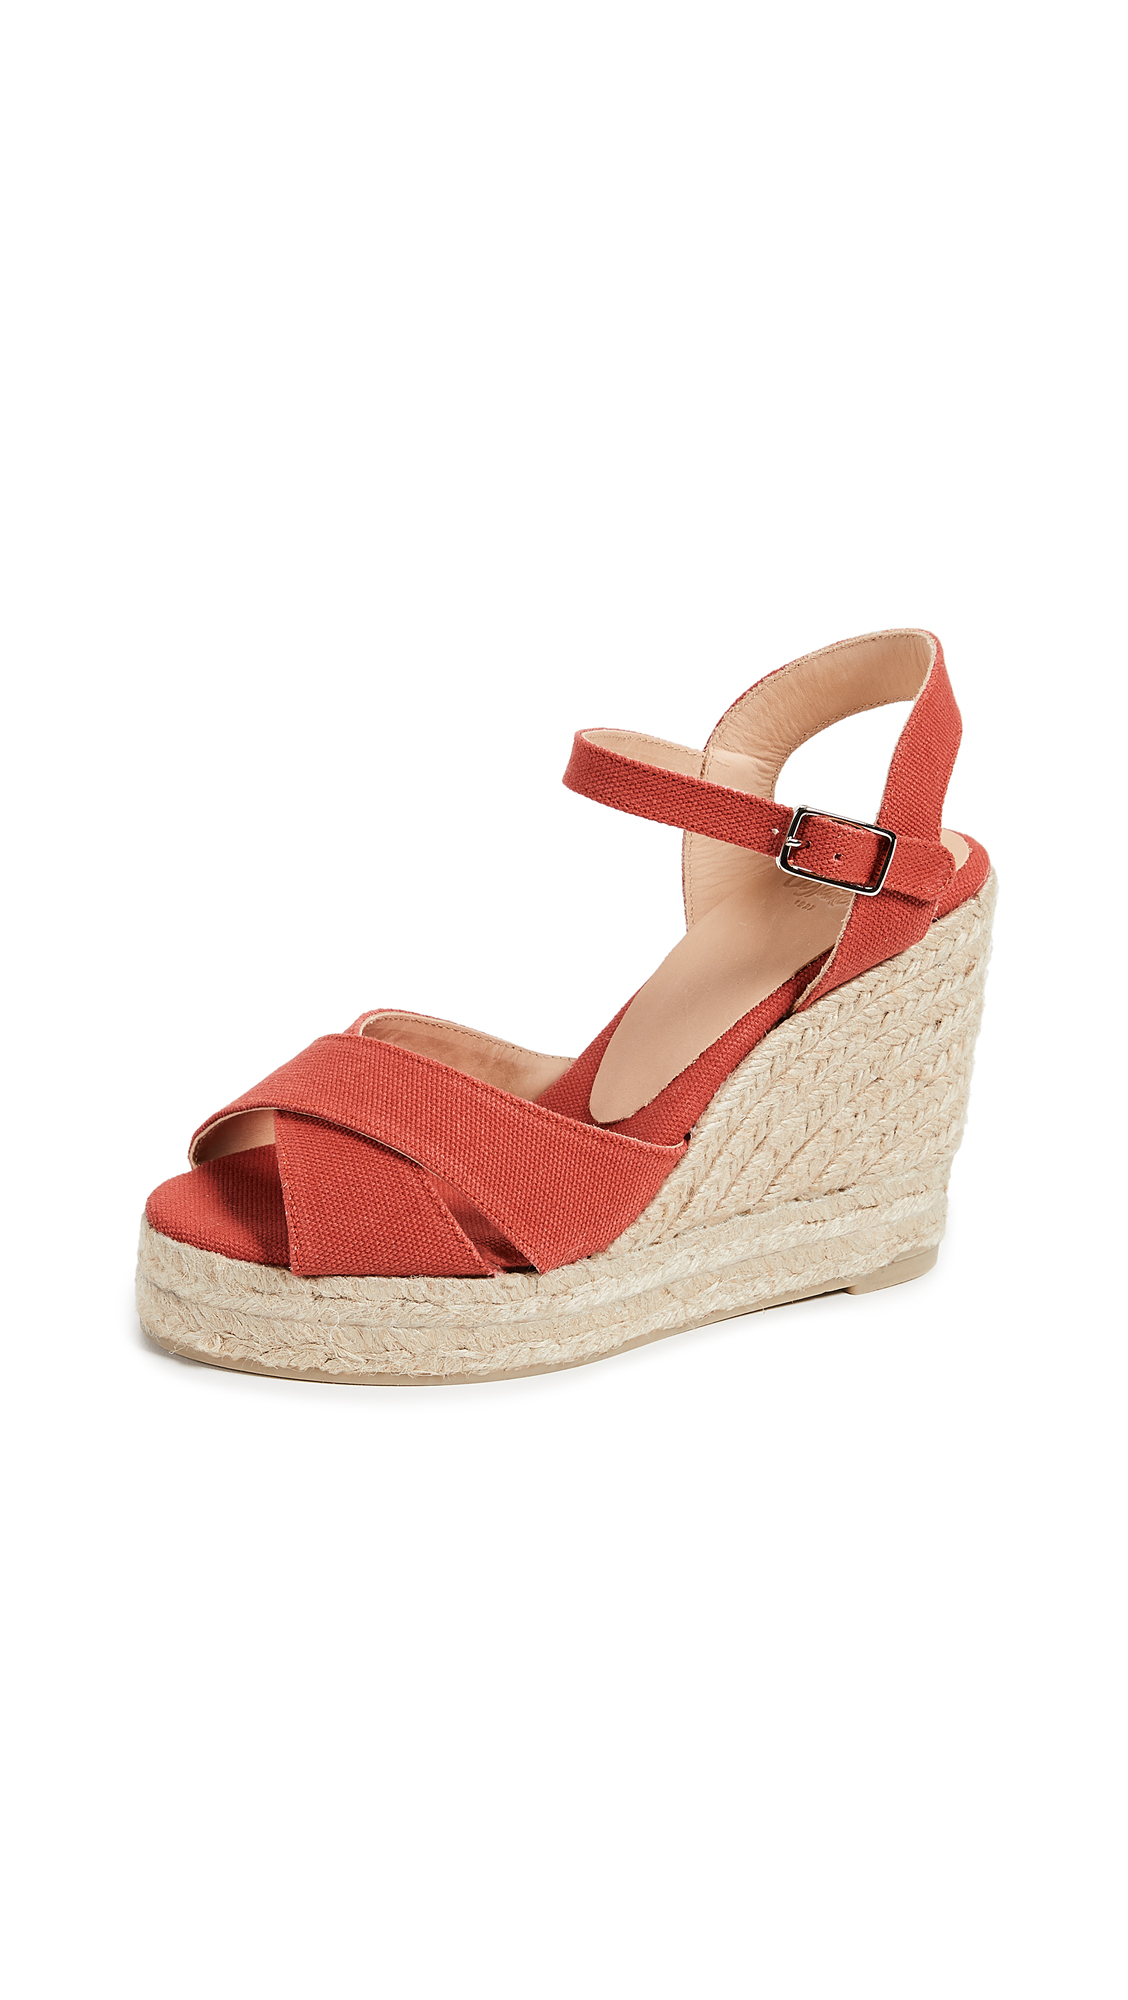 Castaner Blaudell Crisscross Wedge Sandals - Coral